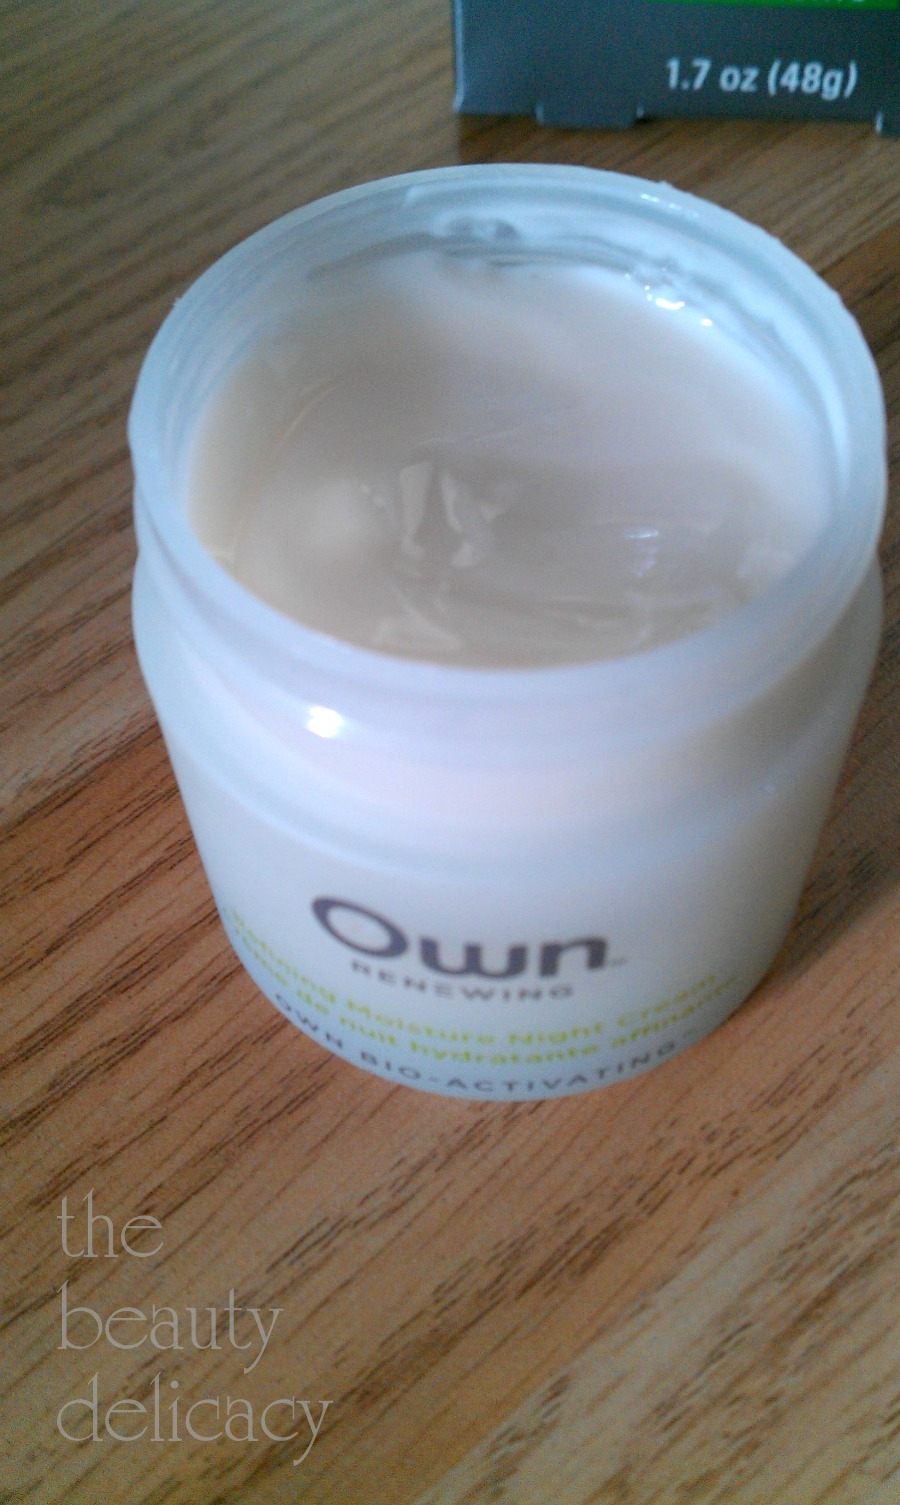 own night cream review 5-7-2013 6-48-17 PM